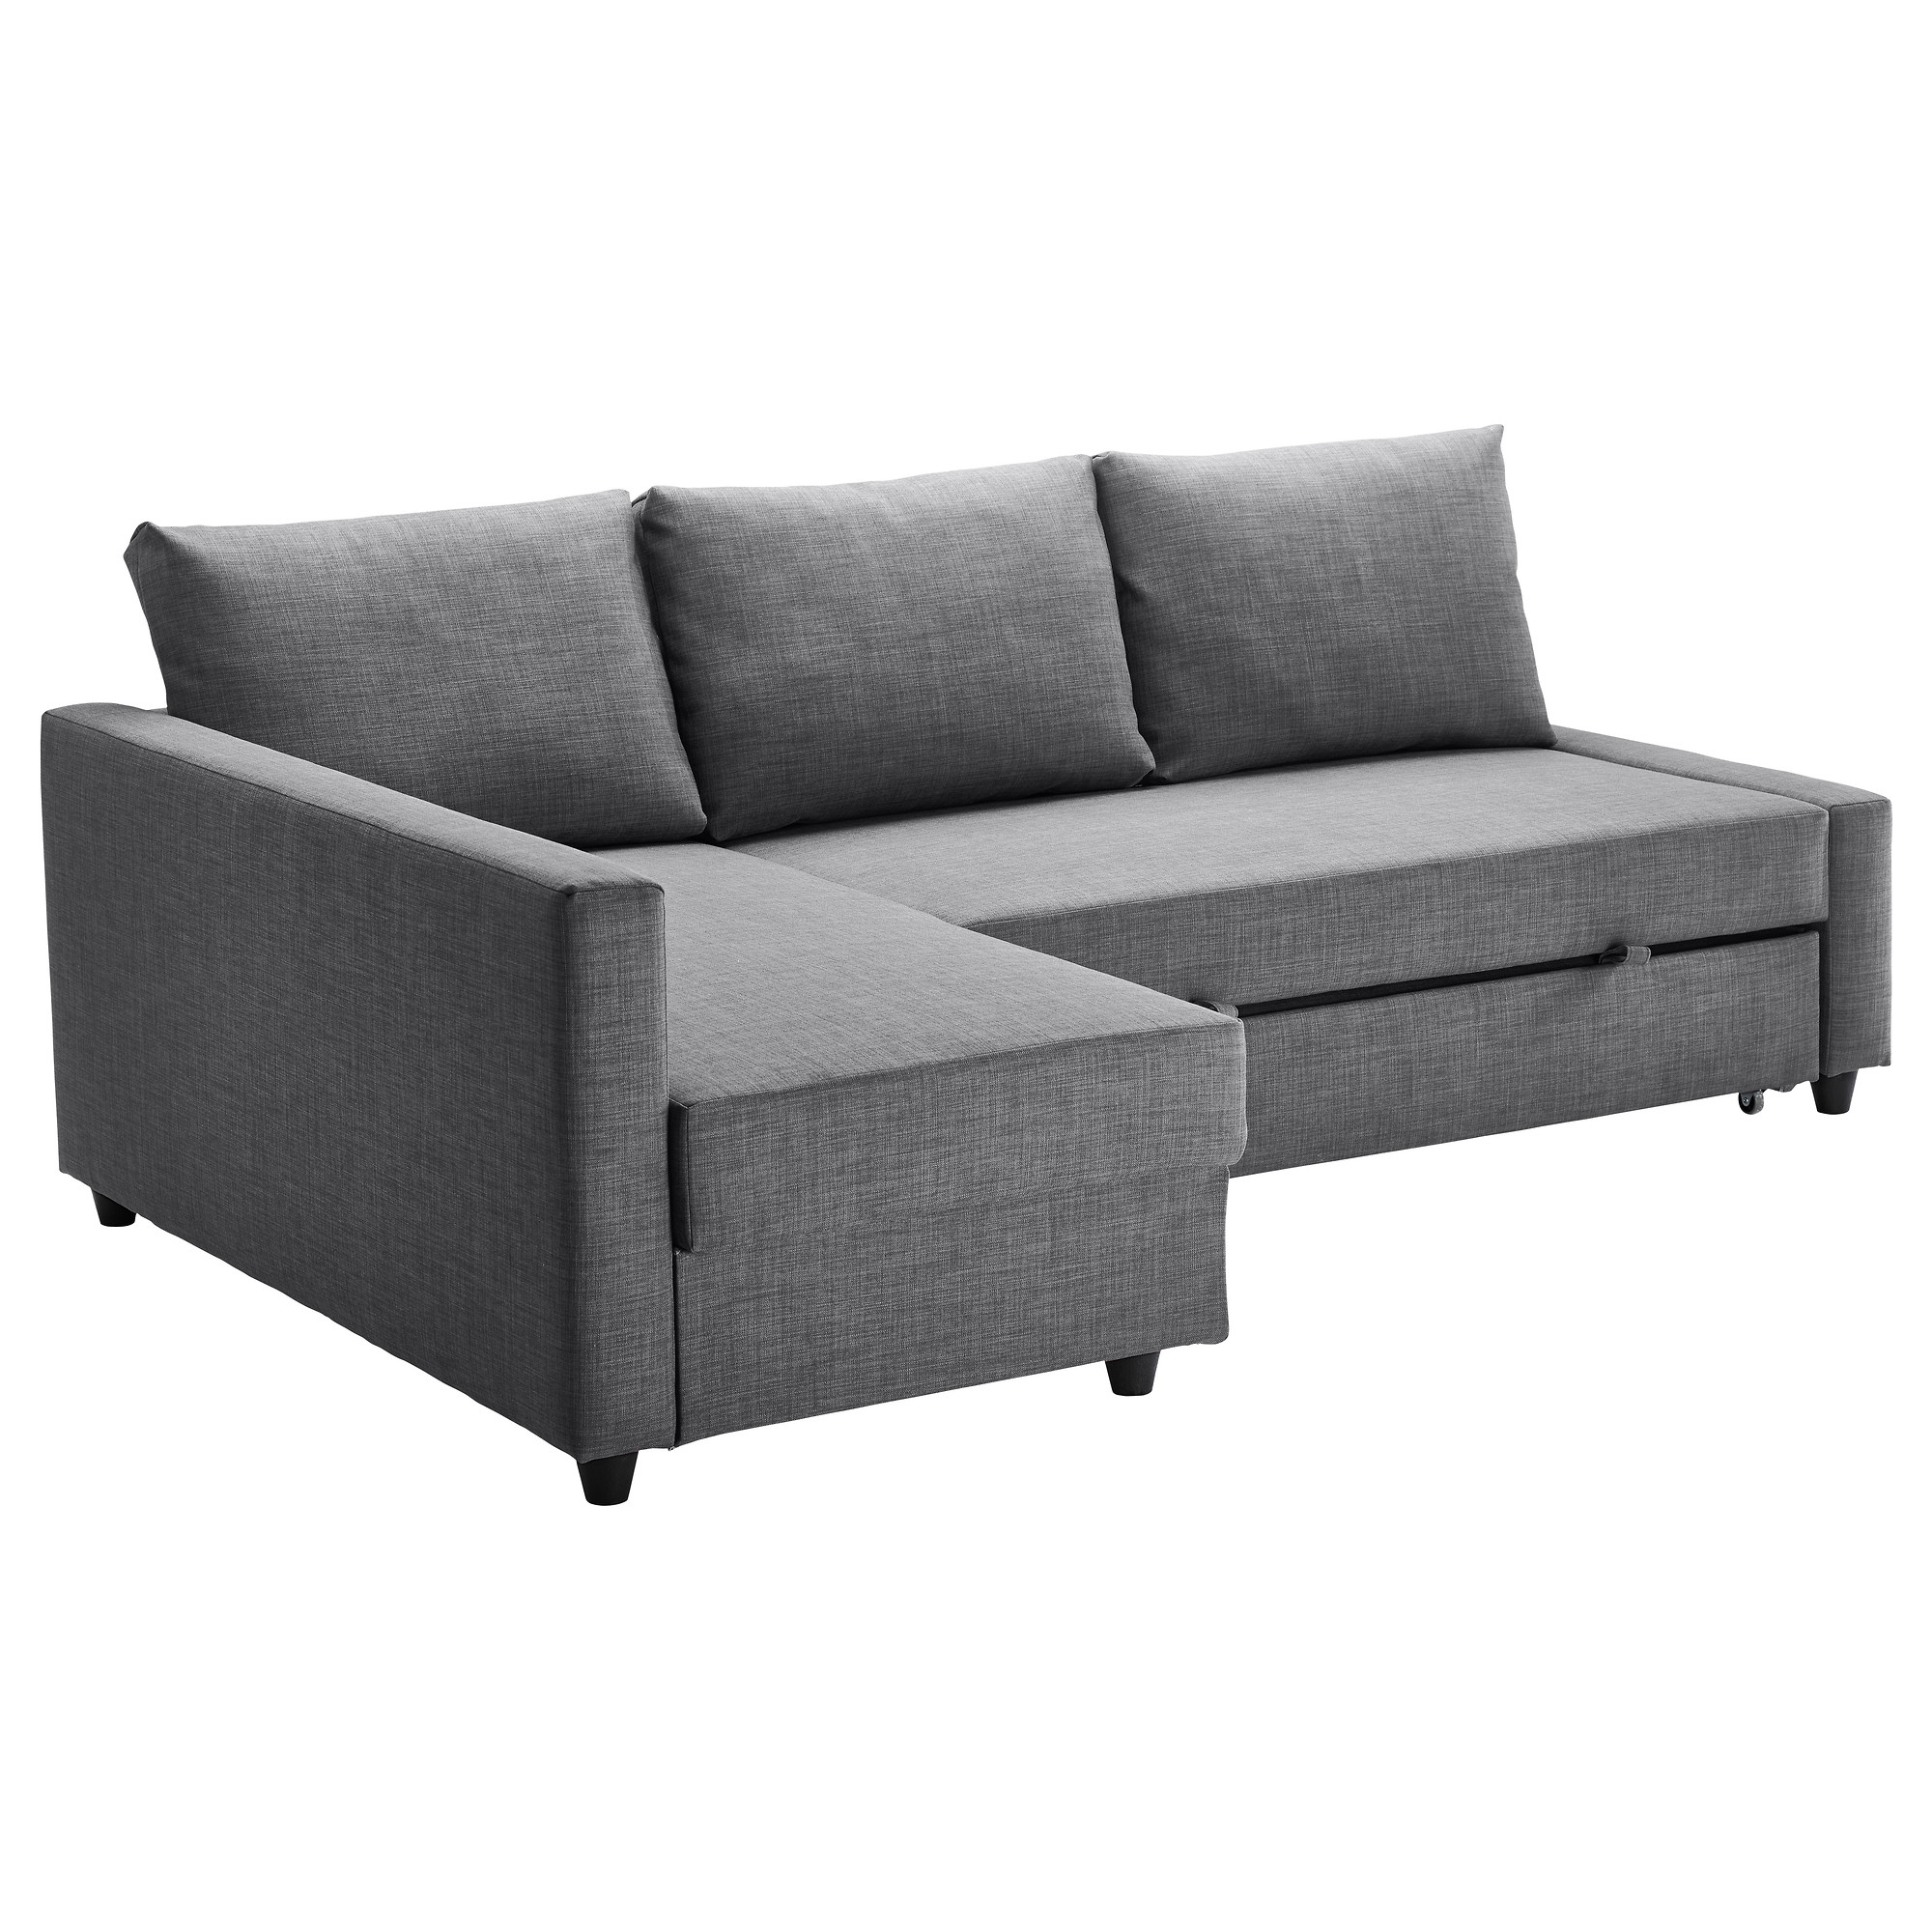 Ikea Loveseat Sleeper Sofas Inside Best And Newest Friheten Sleeper Sectional,3 Seat W/storage – Skiftebo Dark Gray (View 9 of 20)